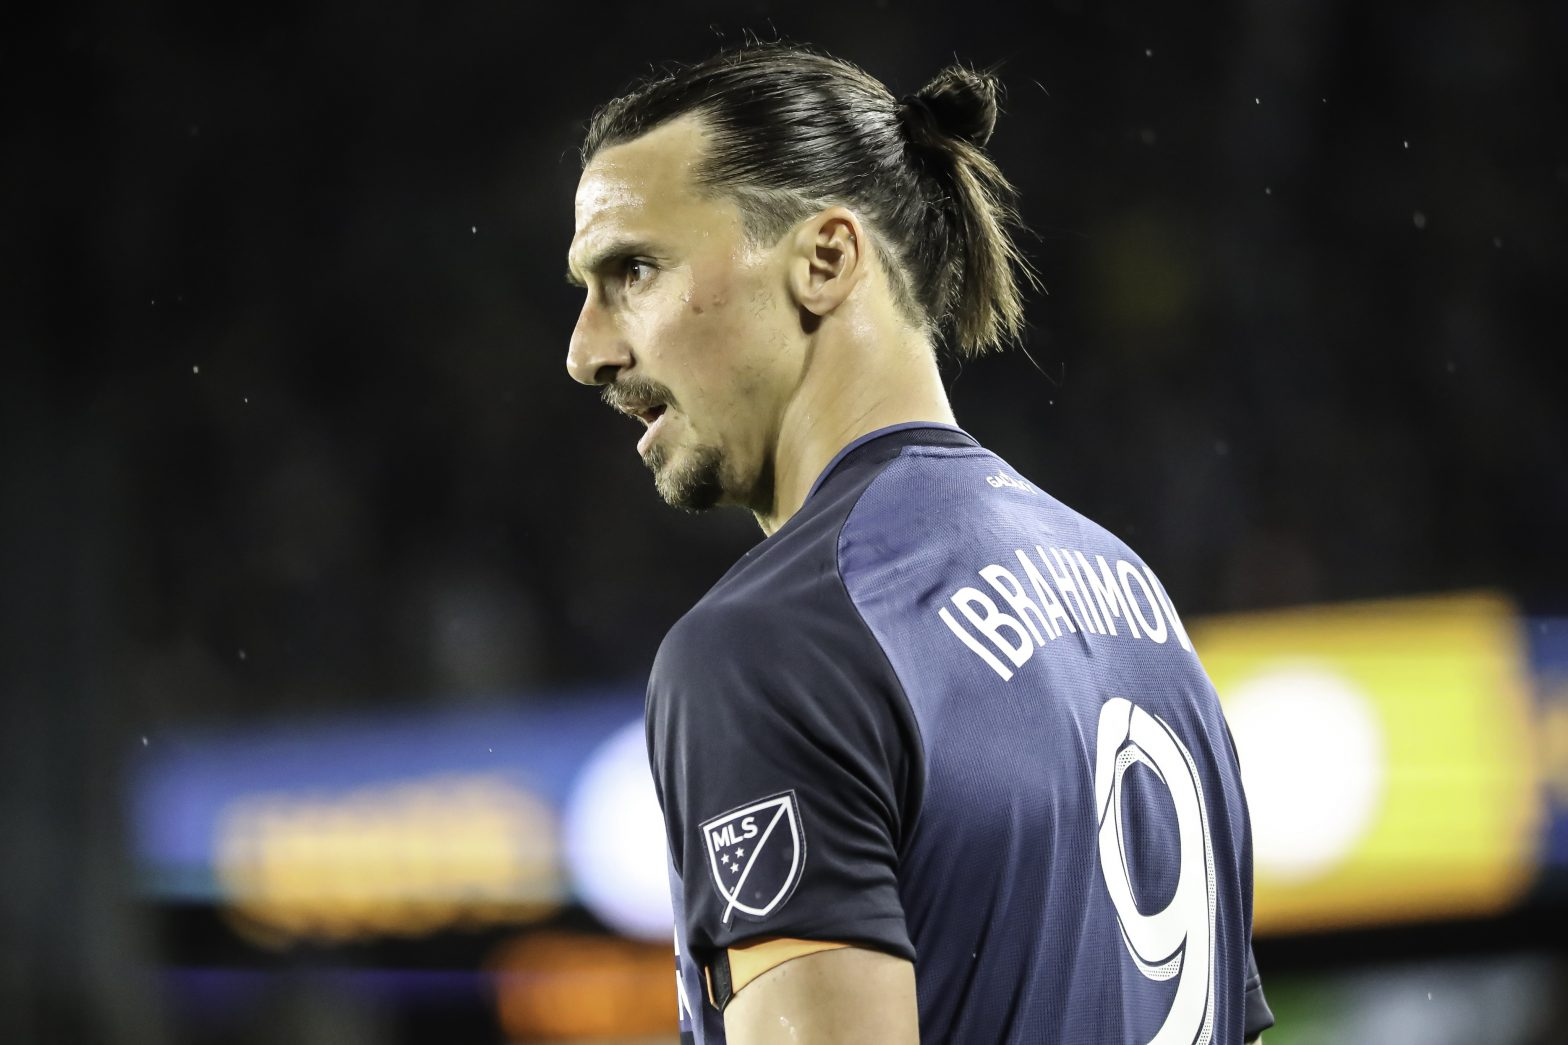 """Andy Witchger (https://commons.wikimedia.org/wiki/File:Zlatan_Ibrahimovic_LA_Galaxy_MLS_Soccer_(47640670062).jpg), """"Zlatan Ibrahimovic LA Galaxy MLS Soccer (47640670062)"""", https://creativecommons.org/licenses/by/2.0/legalcode"""